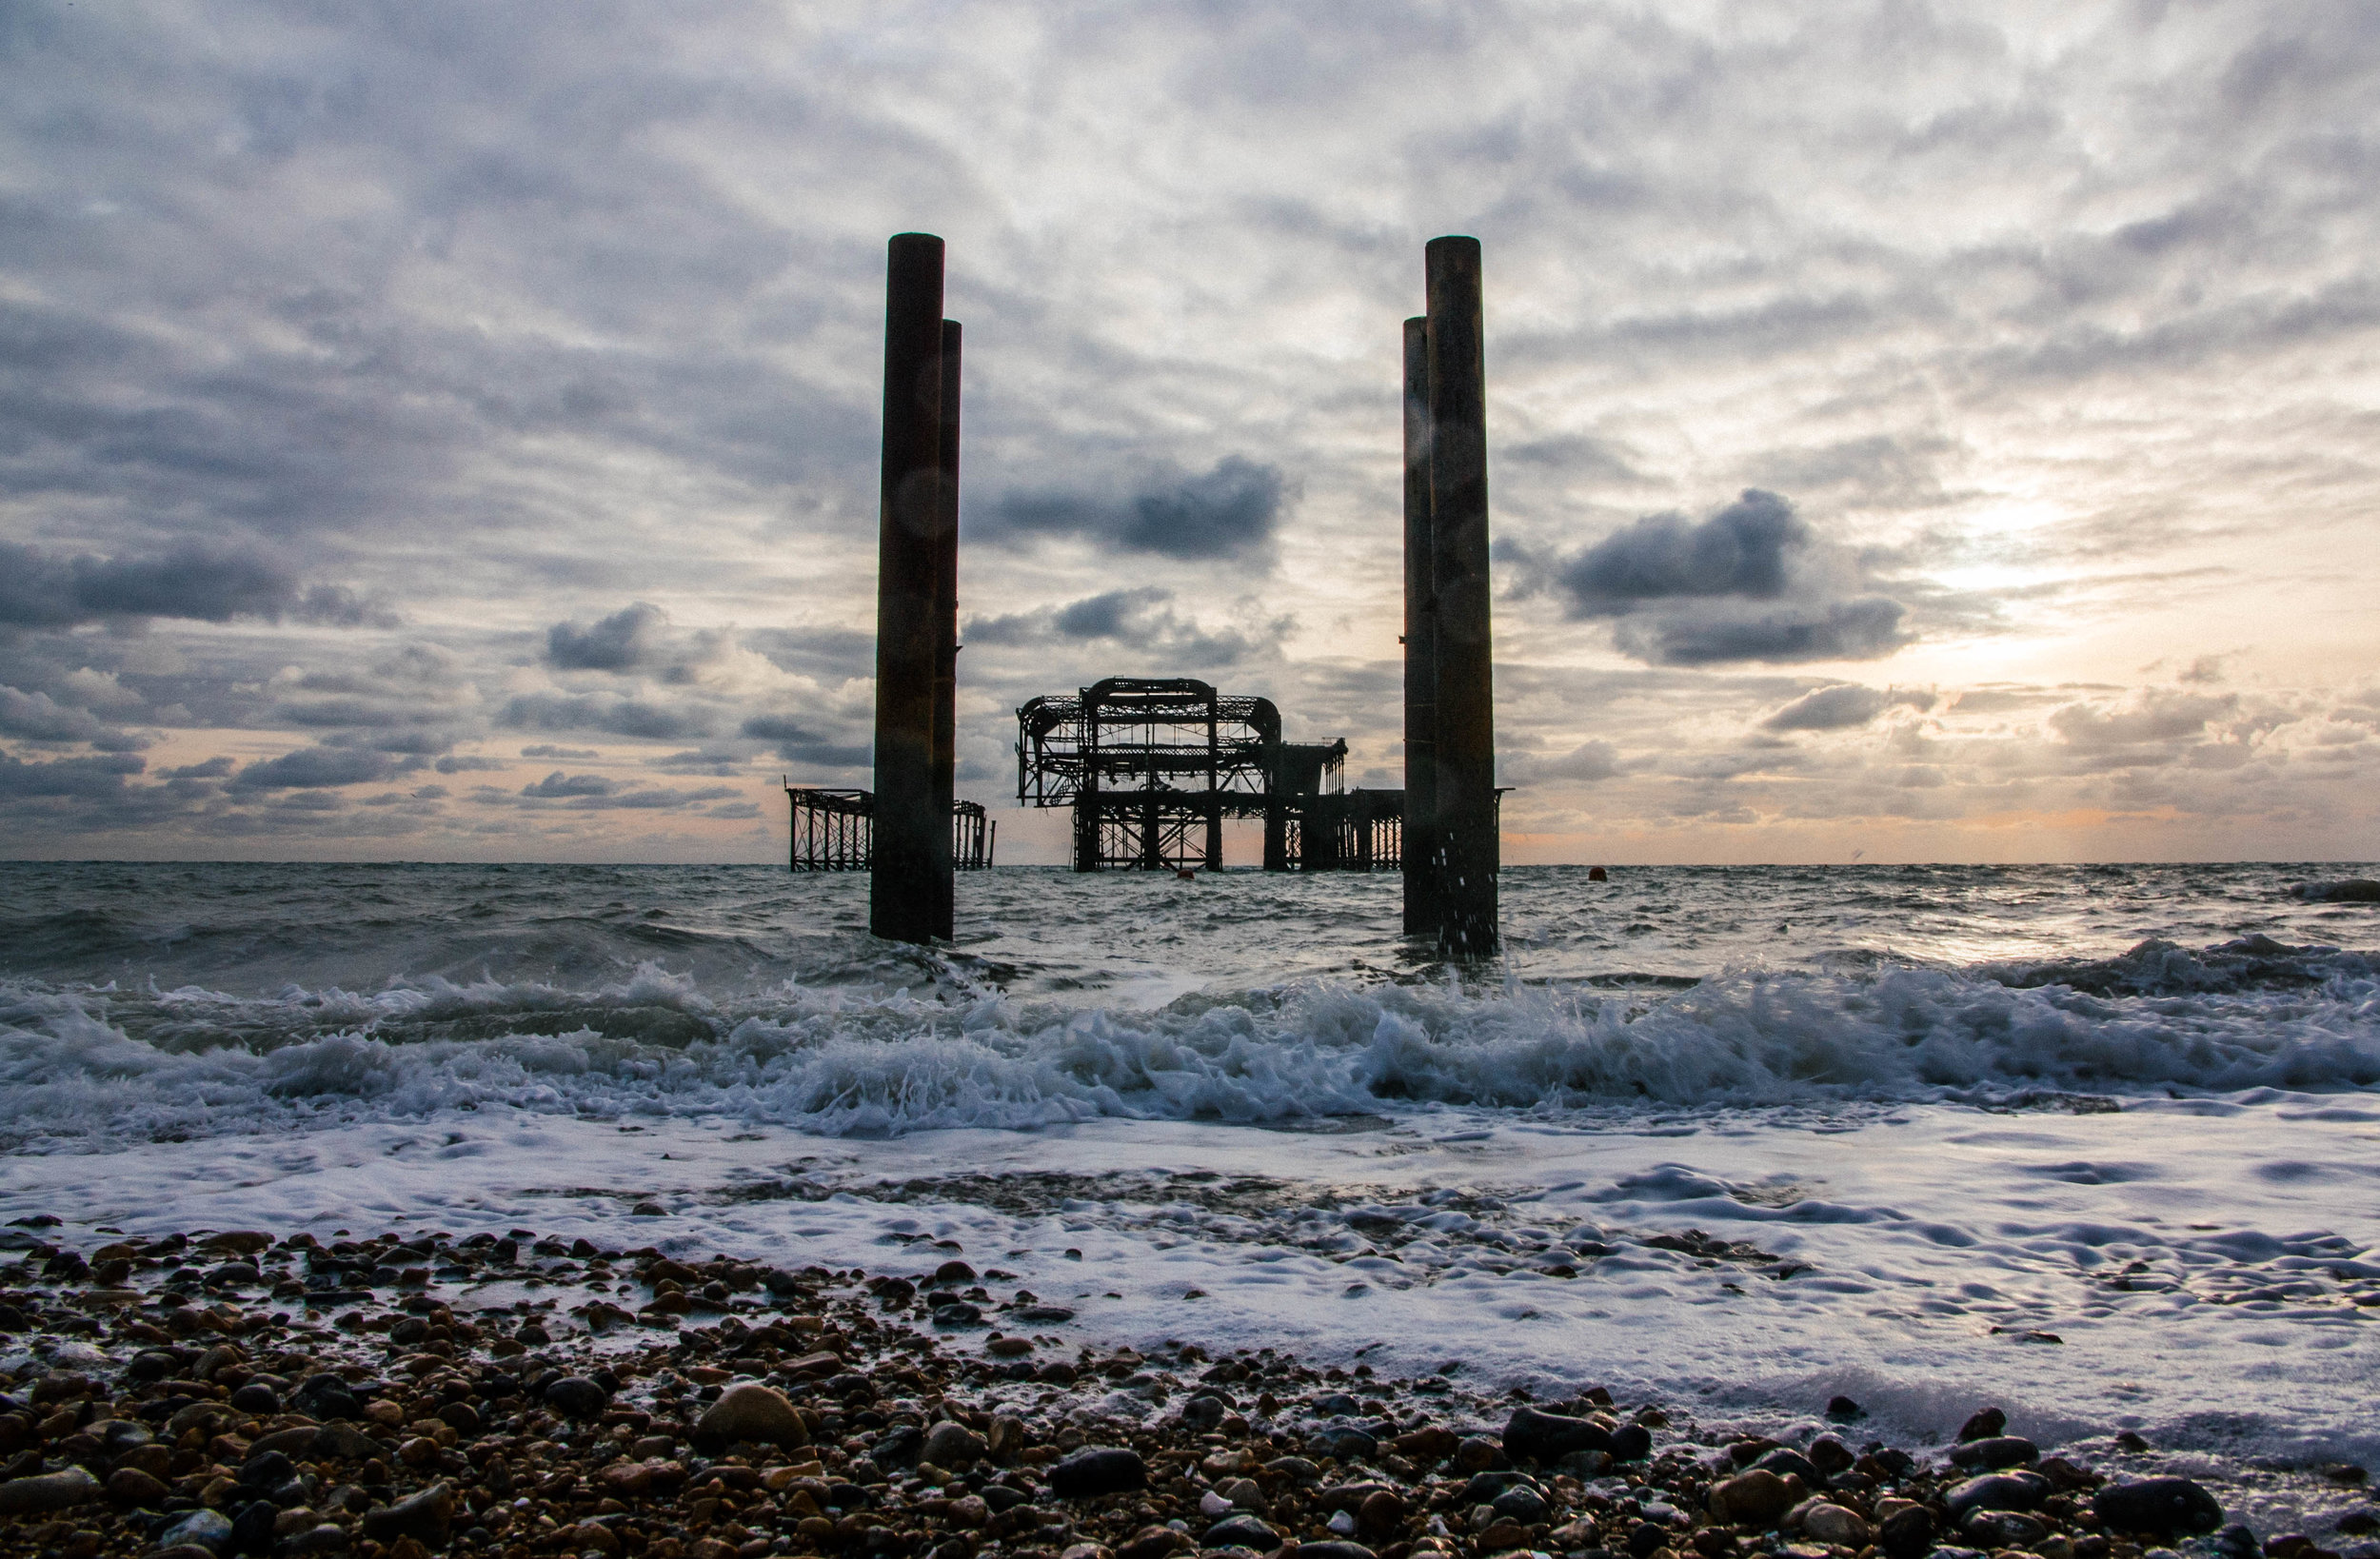 Waves on the West Pier